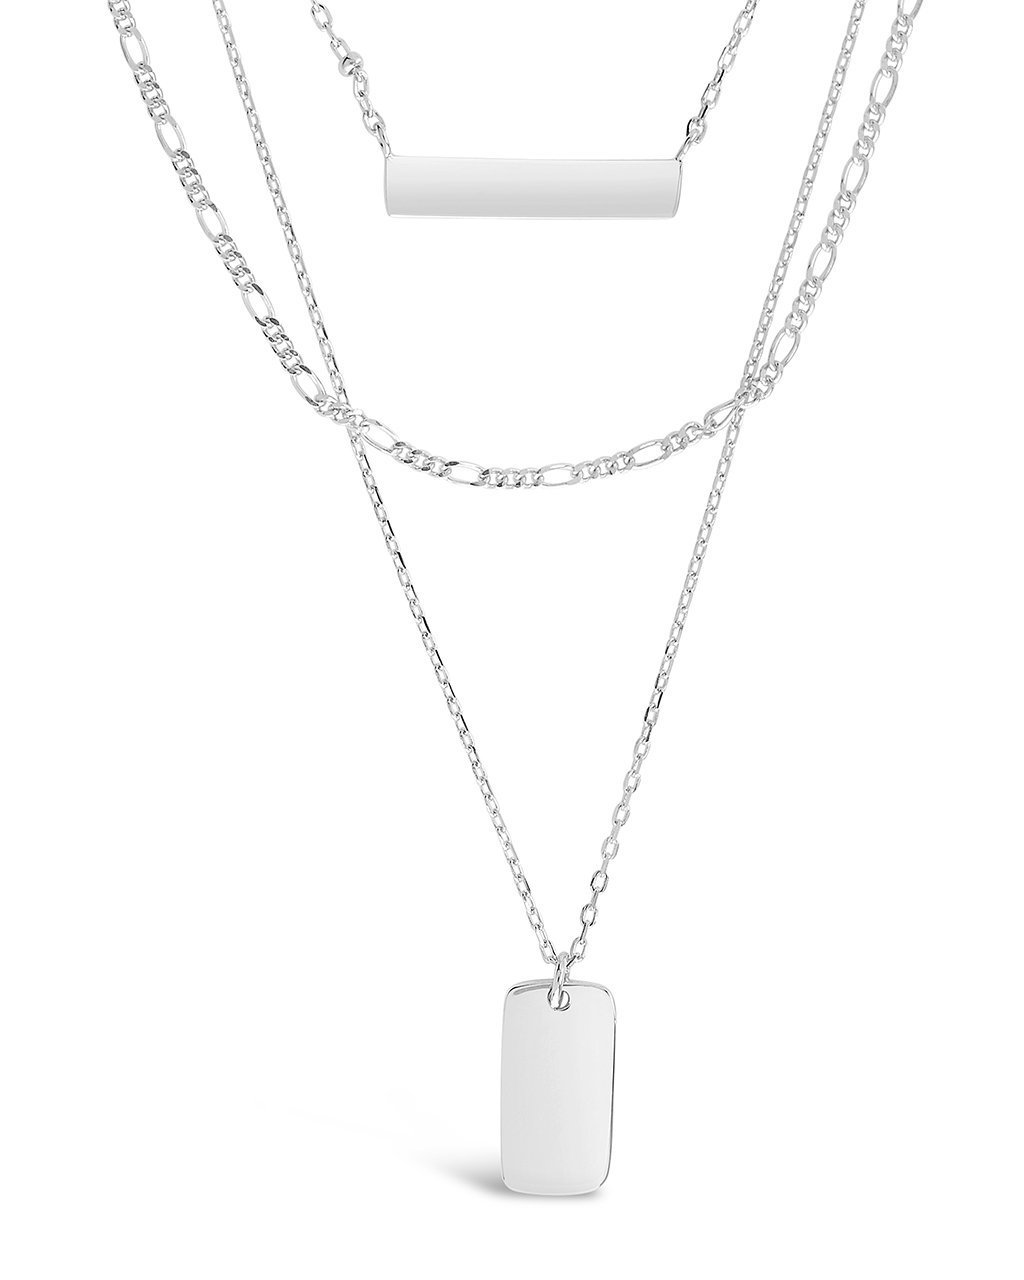 Triple Layered Bar Necklace